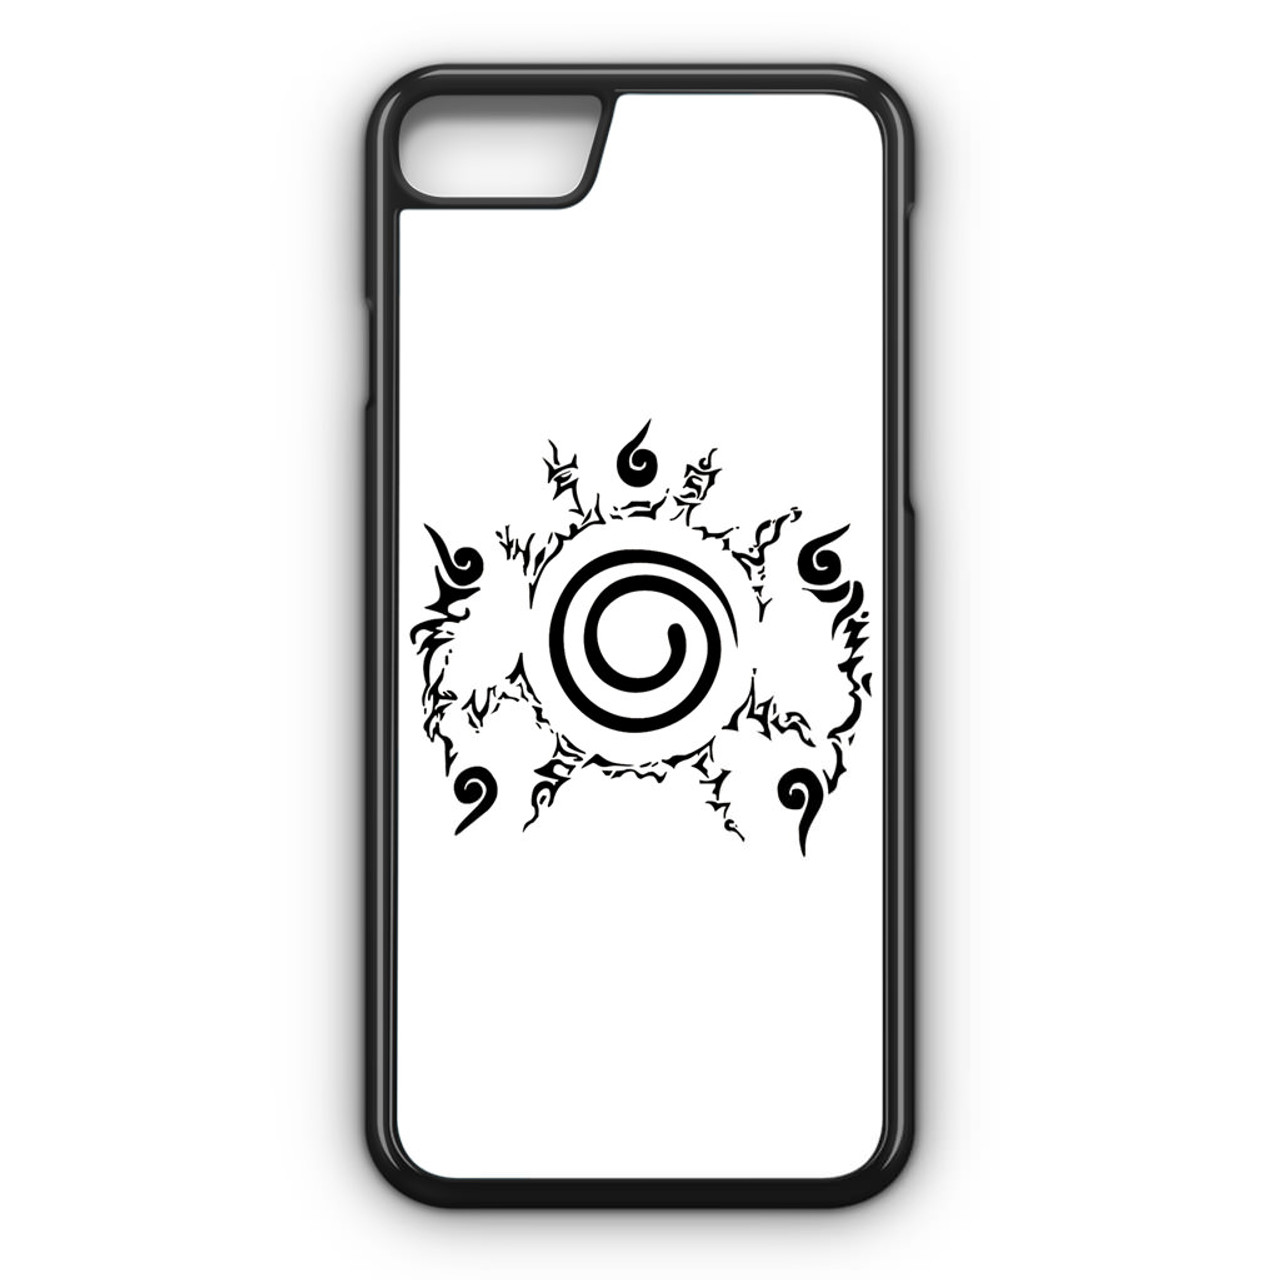 iphone 8 case seal